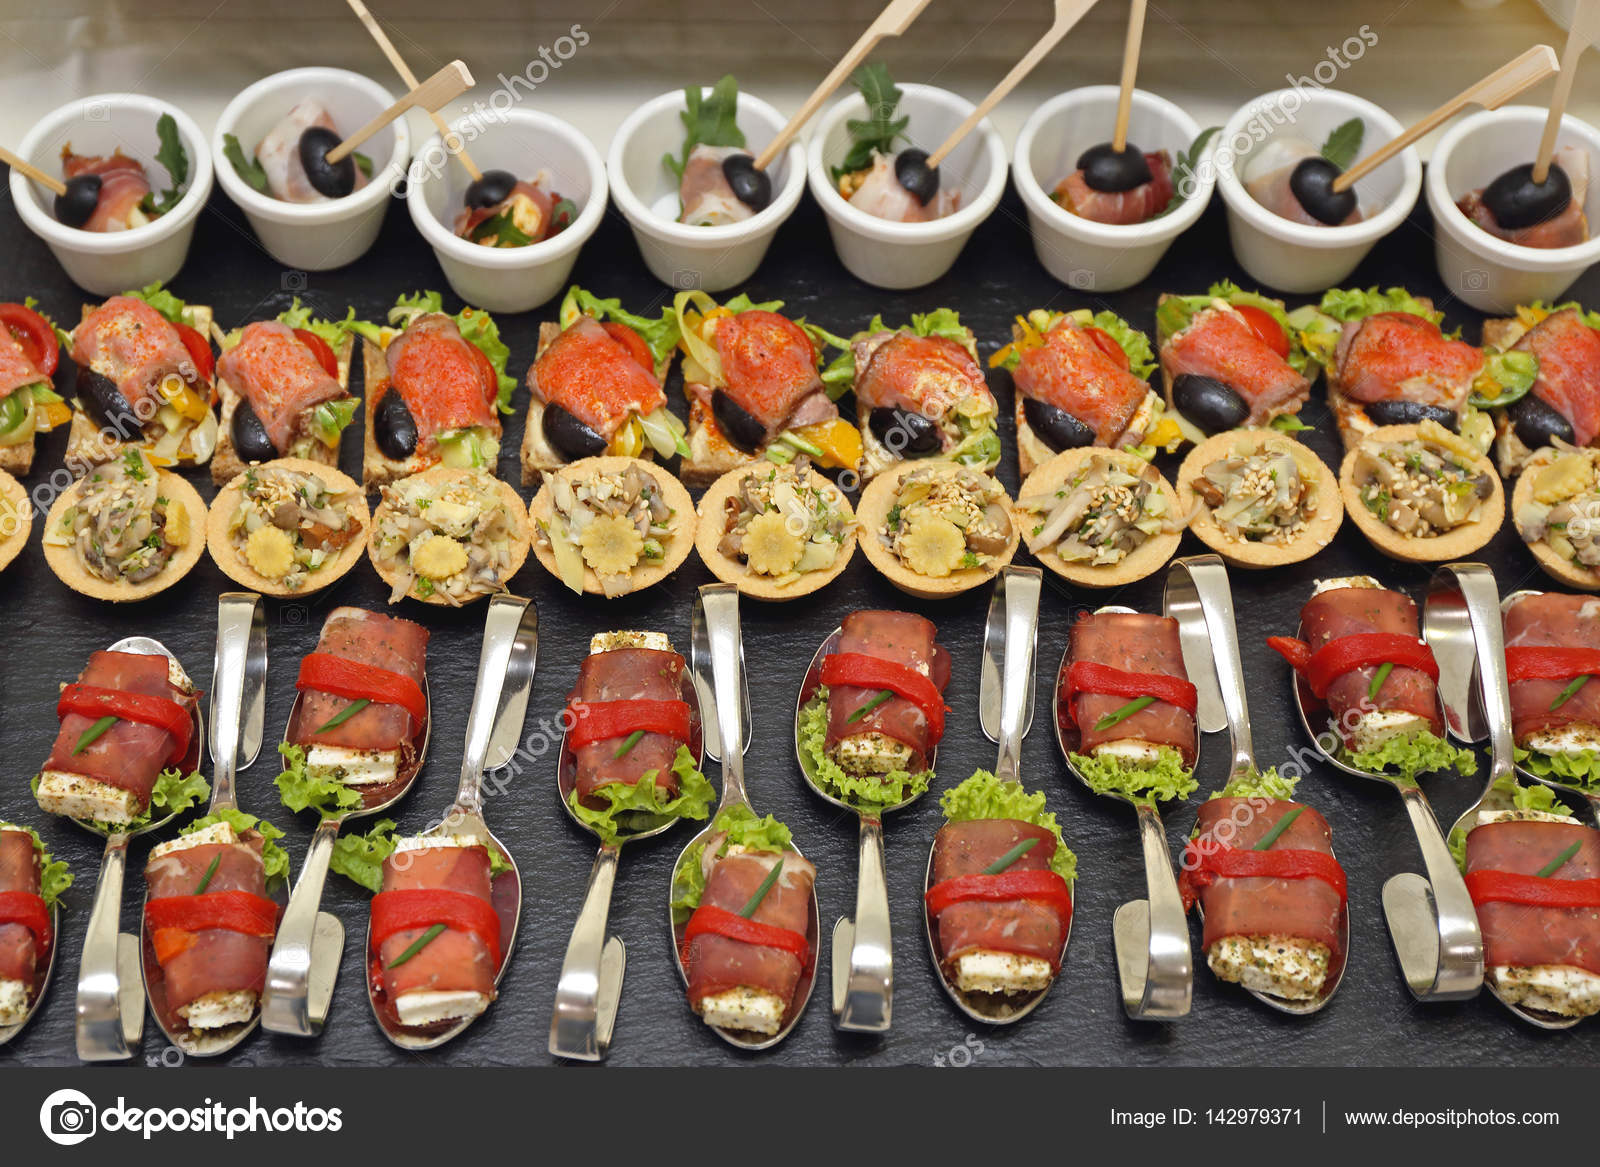 depositphotos_142979371-stock-photo-party-food-canapes.jpg